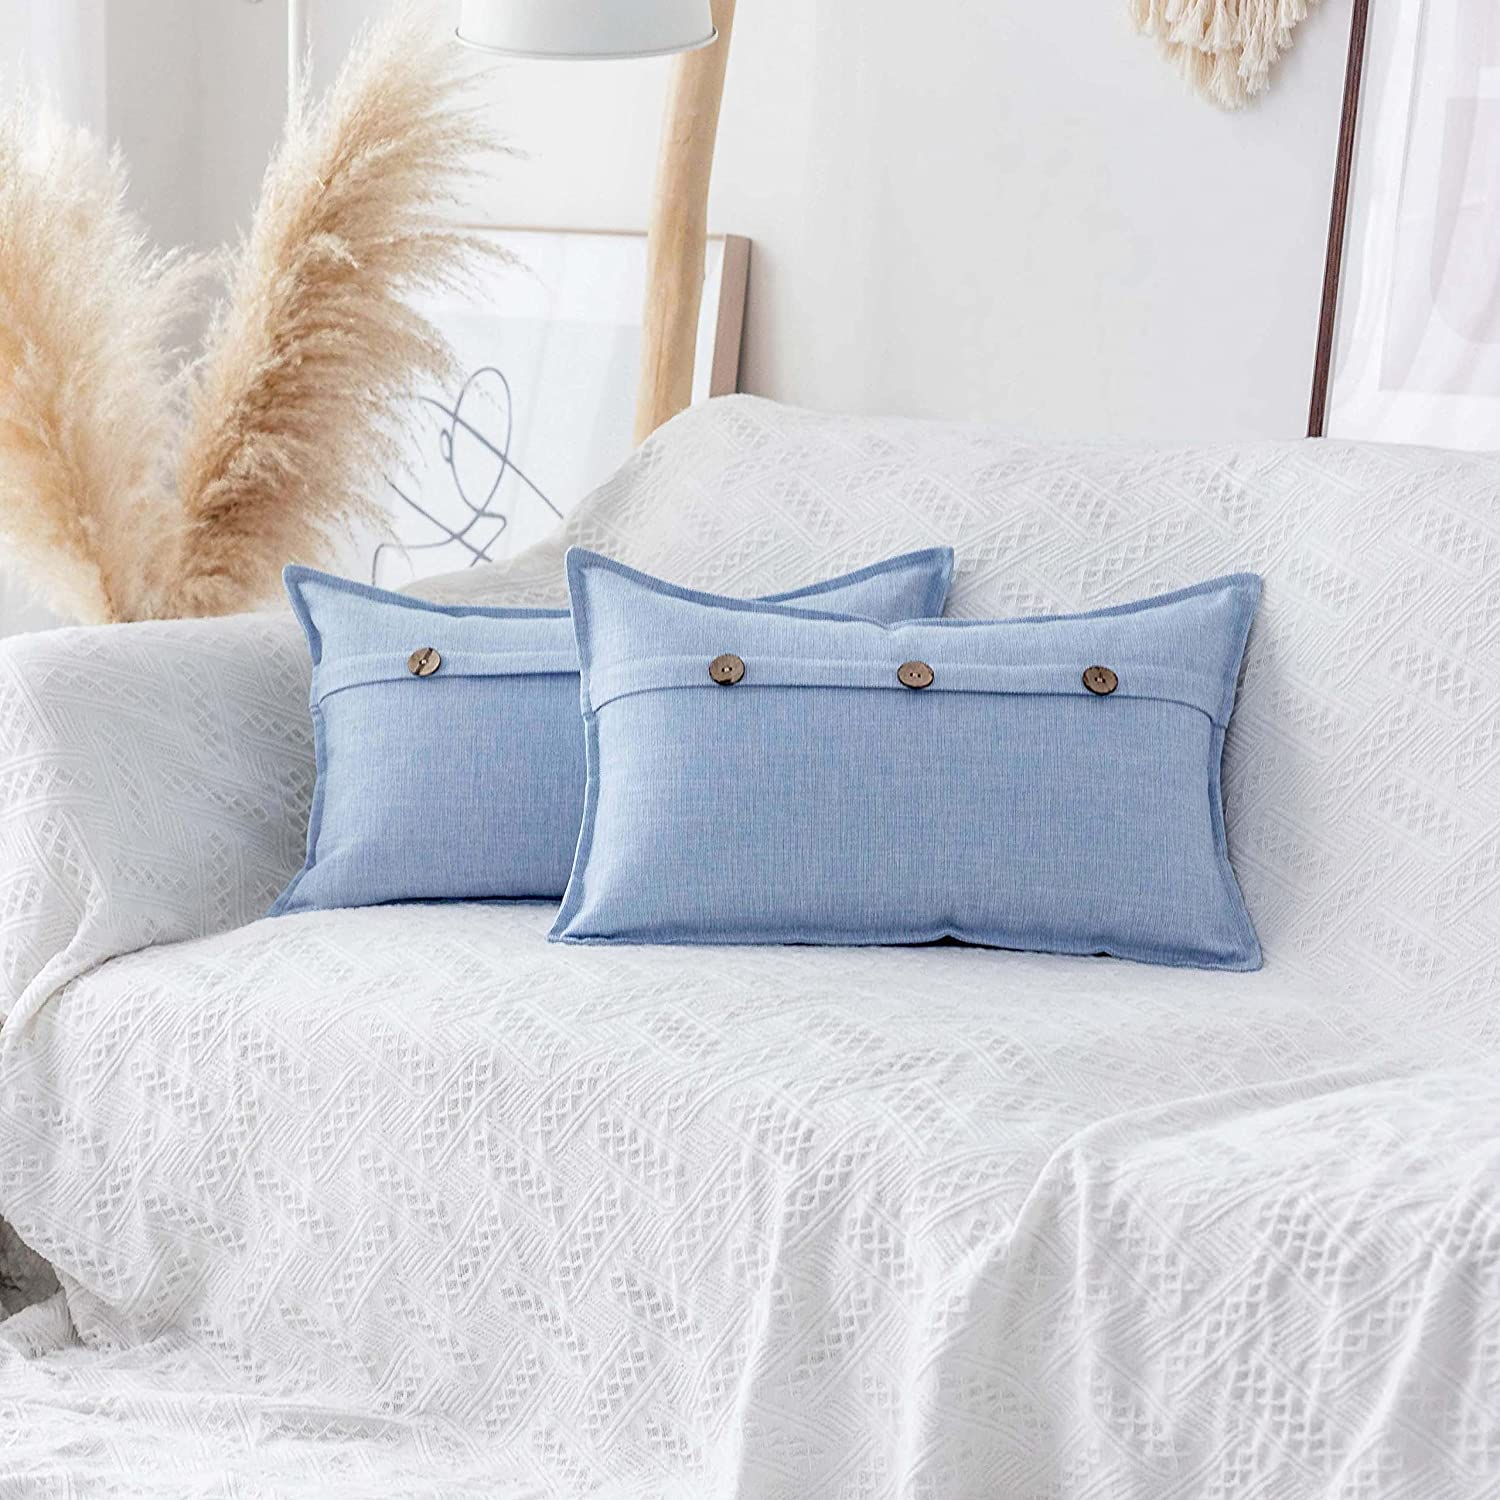 Home Brilliant Burlap Linen Throw Pillow Covers with Triple Buttons Cushion Covers for Bench, 2 Pieces, 12 x 20 inch (30x50cm), Light Blue